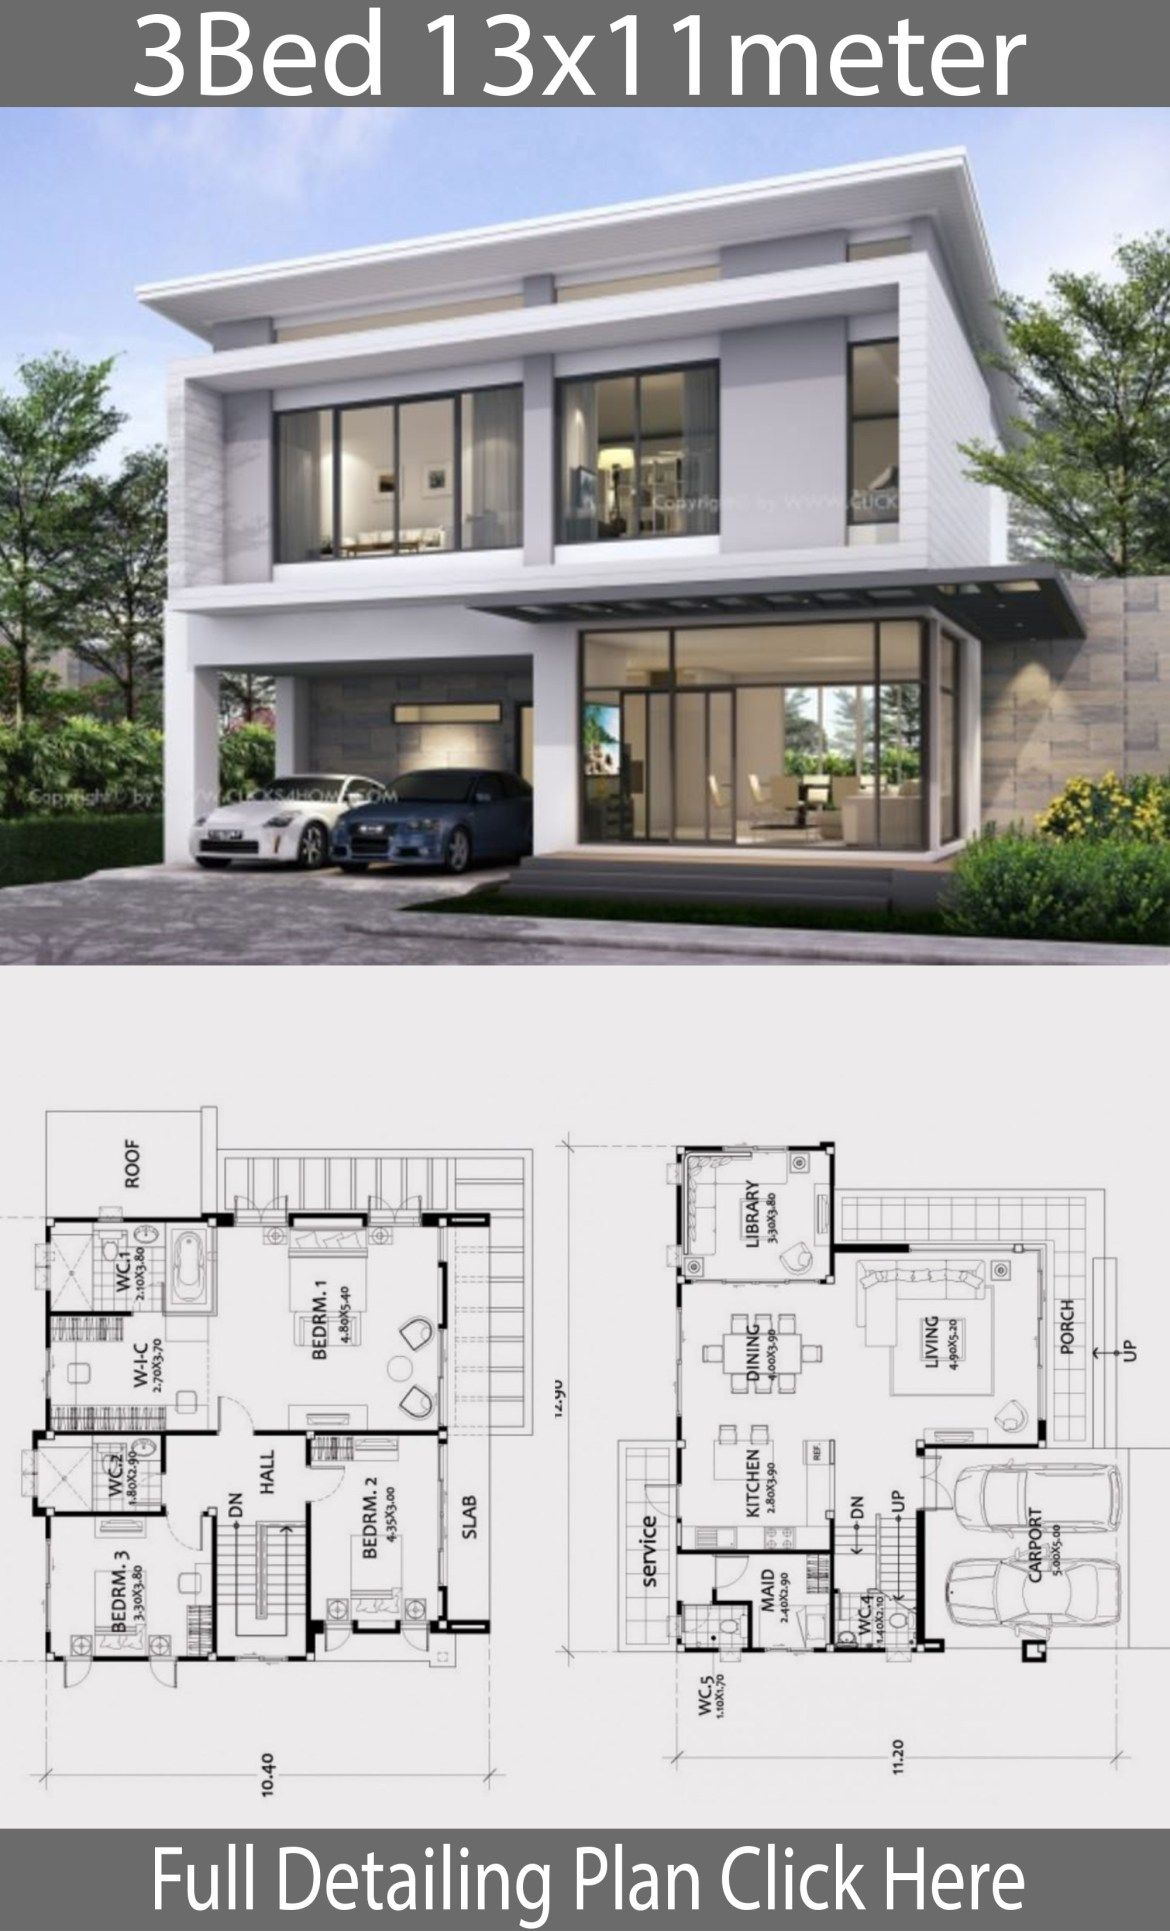 Home Design 13x11m With 3 Bedrooms In 2020 House Front Design House Designs Exterior Modern House Plans